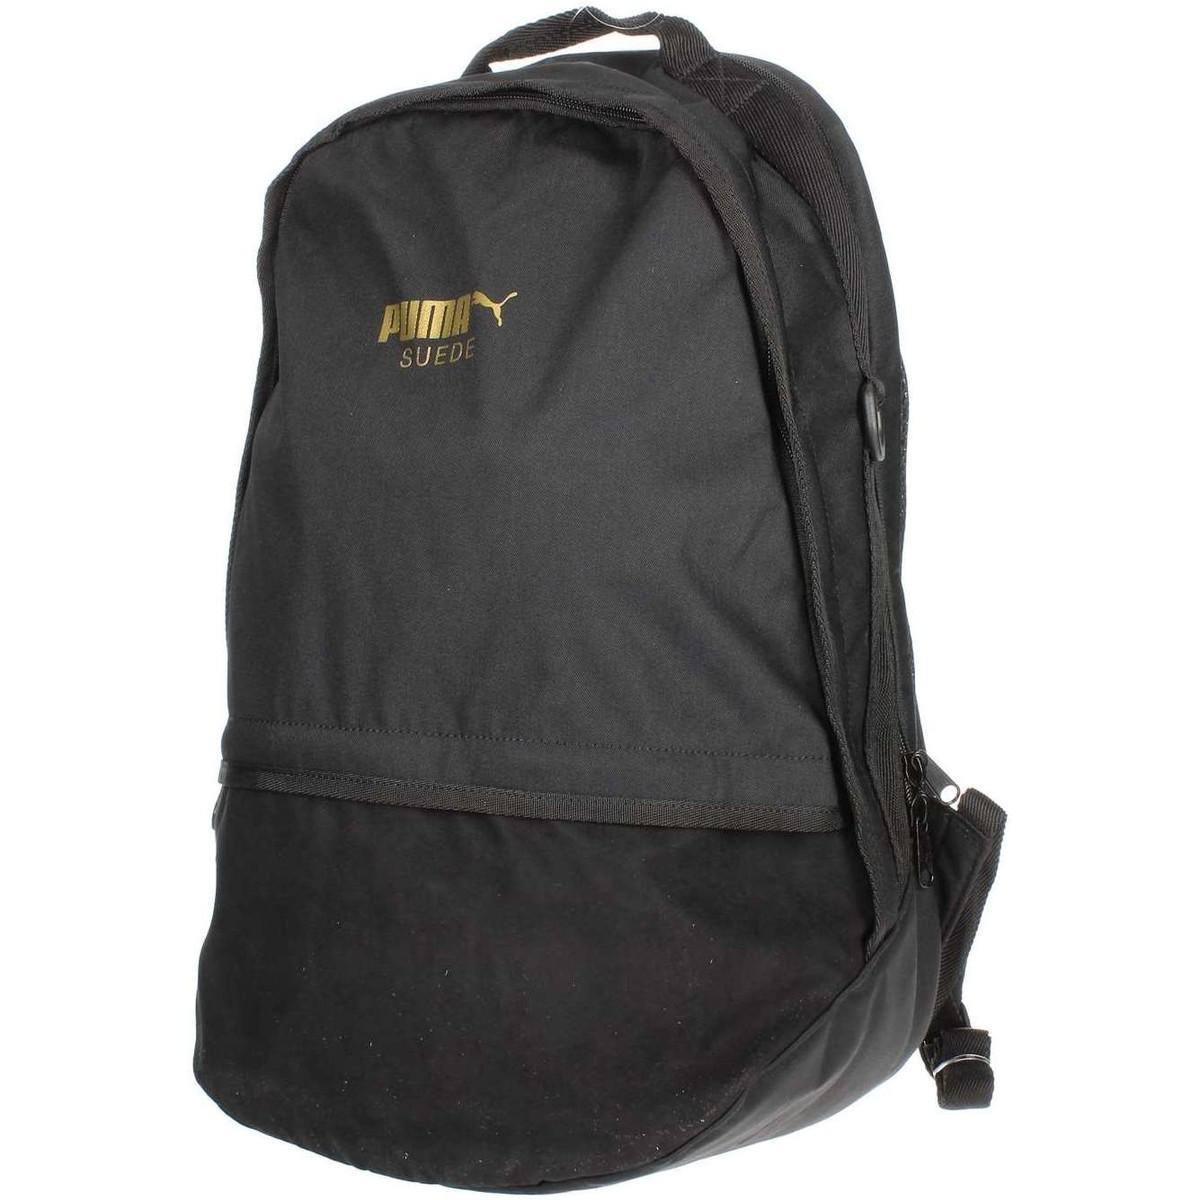 PUMA - 075087 03 Men s Backpack In Black for Men - Lyst. View fullscreen bc97c9e4aa